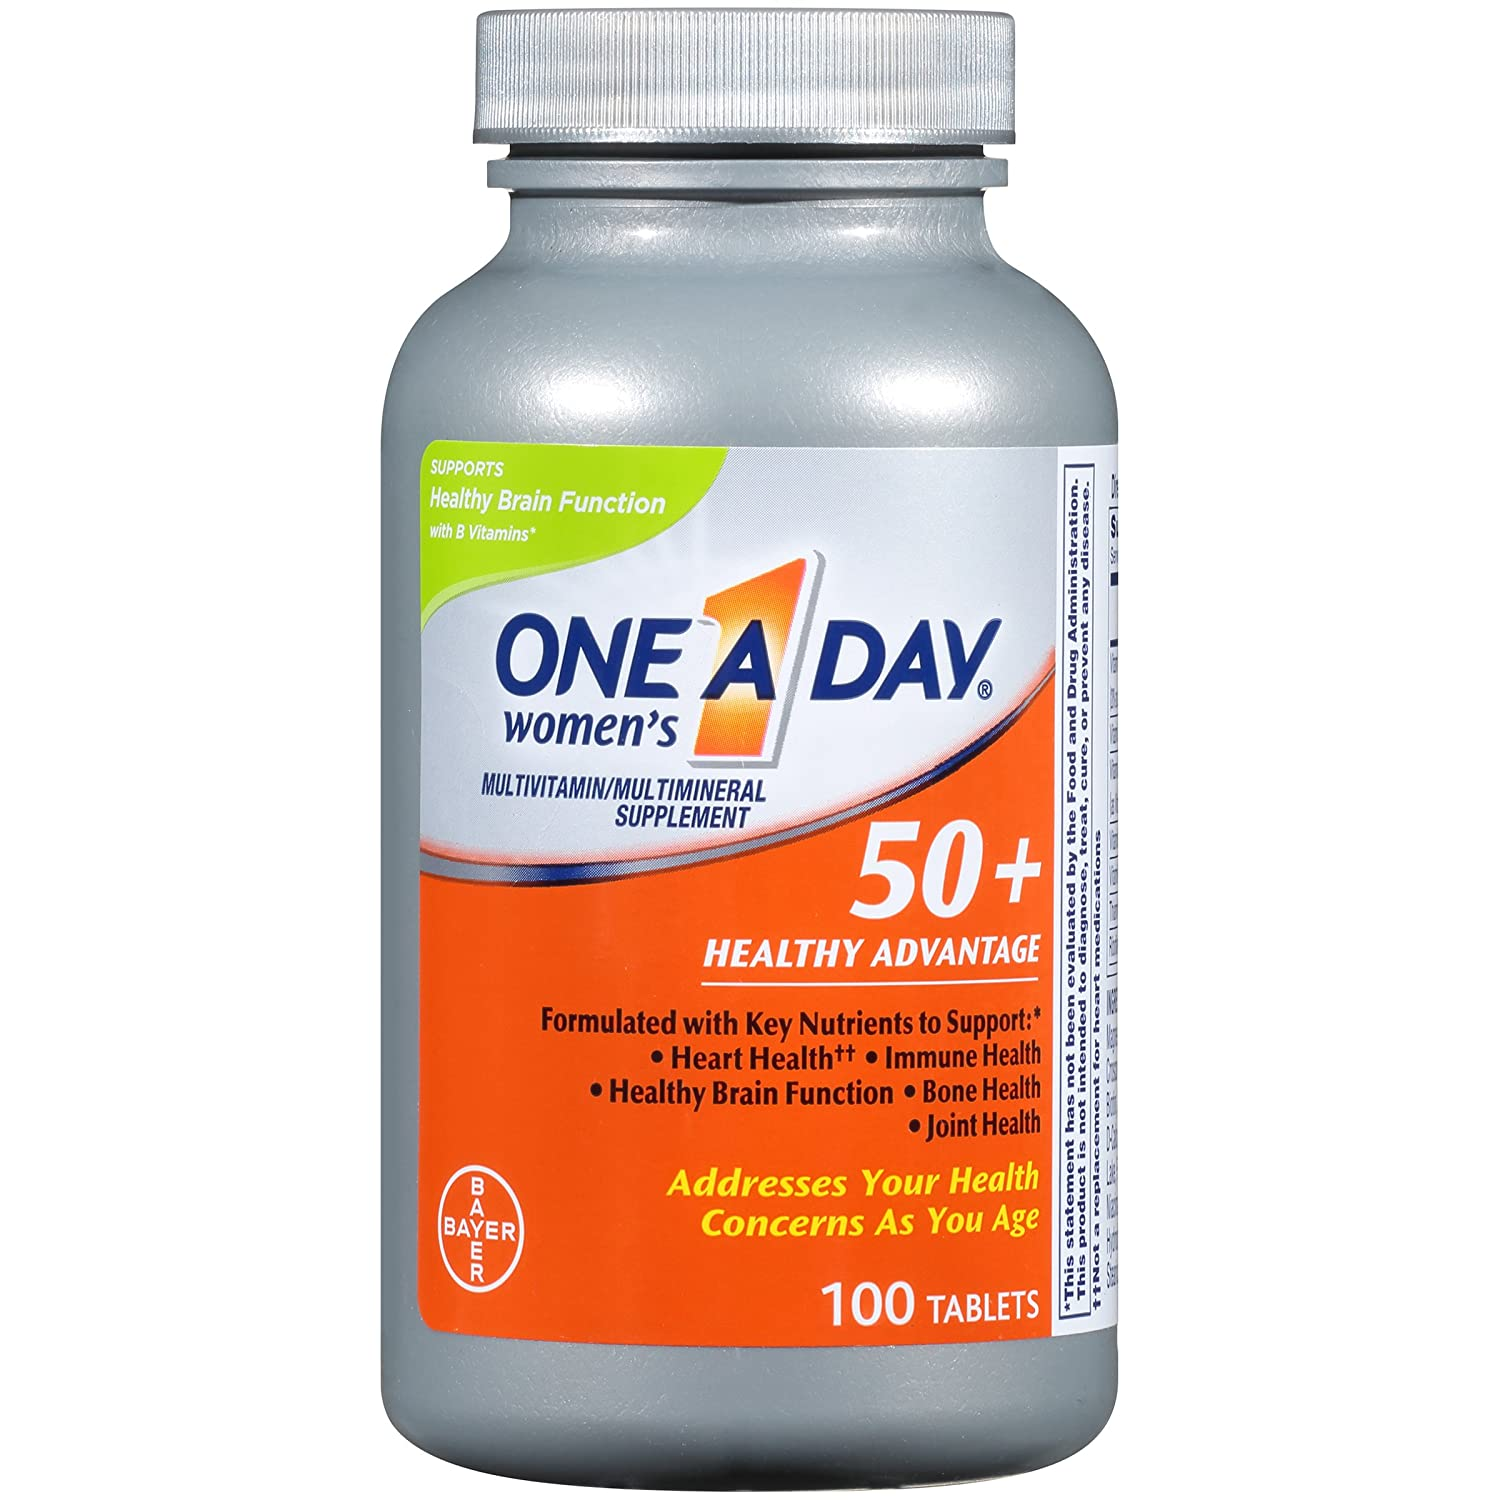 One-A-Day Mens 50 Healthy Advantage Reviews advise